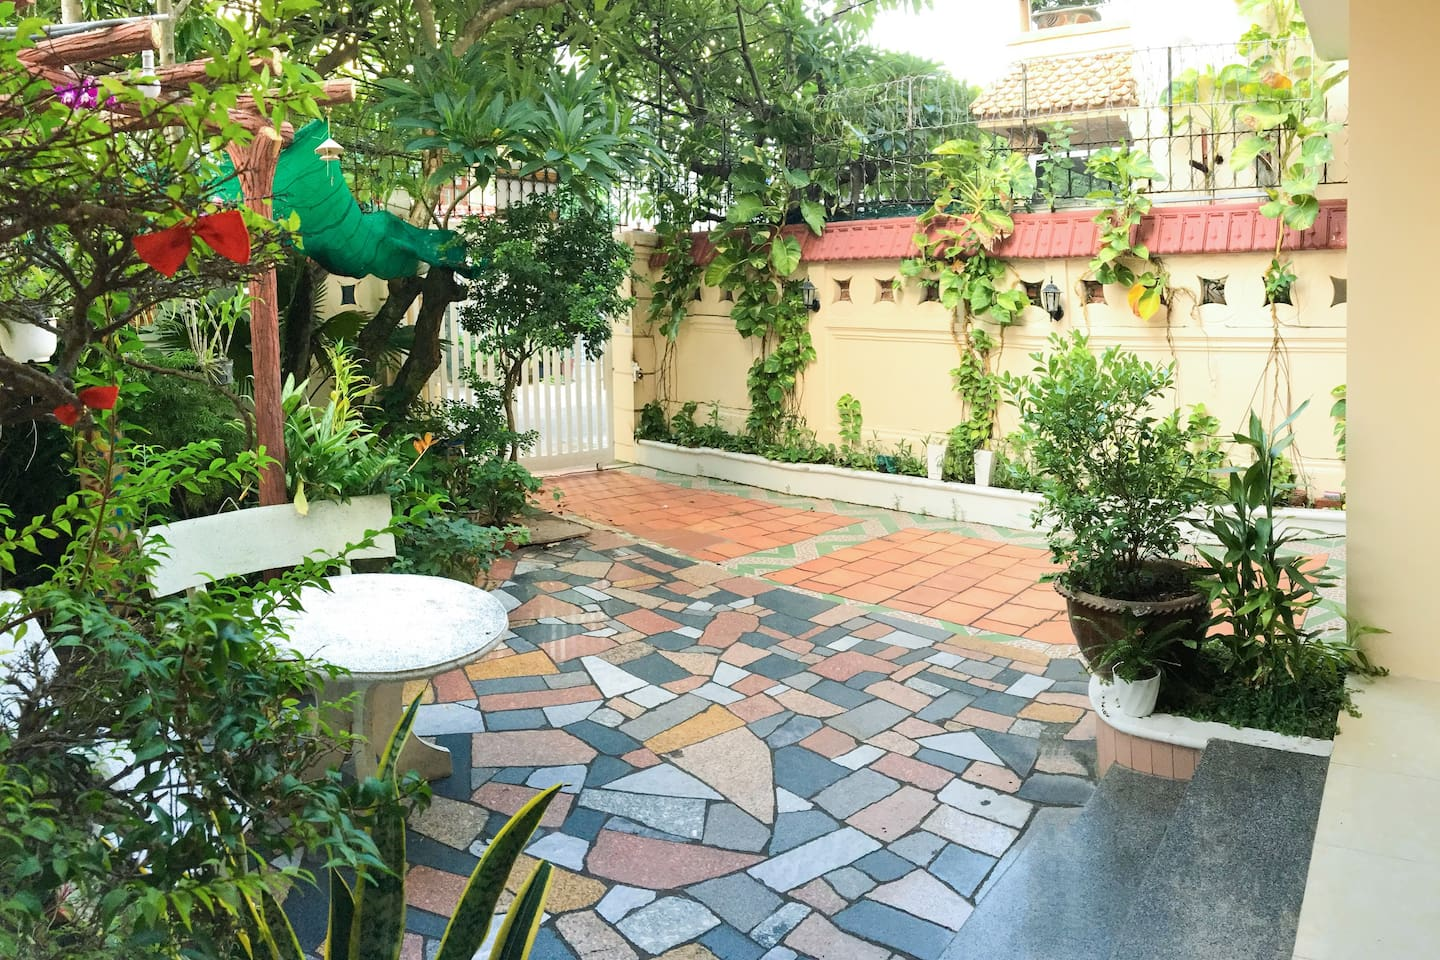 Vũng Tàu Villa Ali 2- Spacious and airy front yard with green space